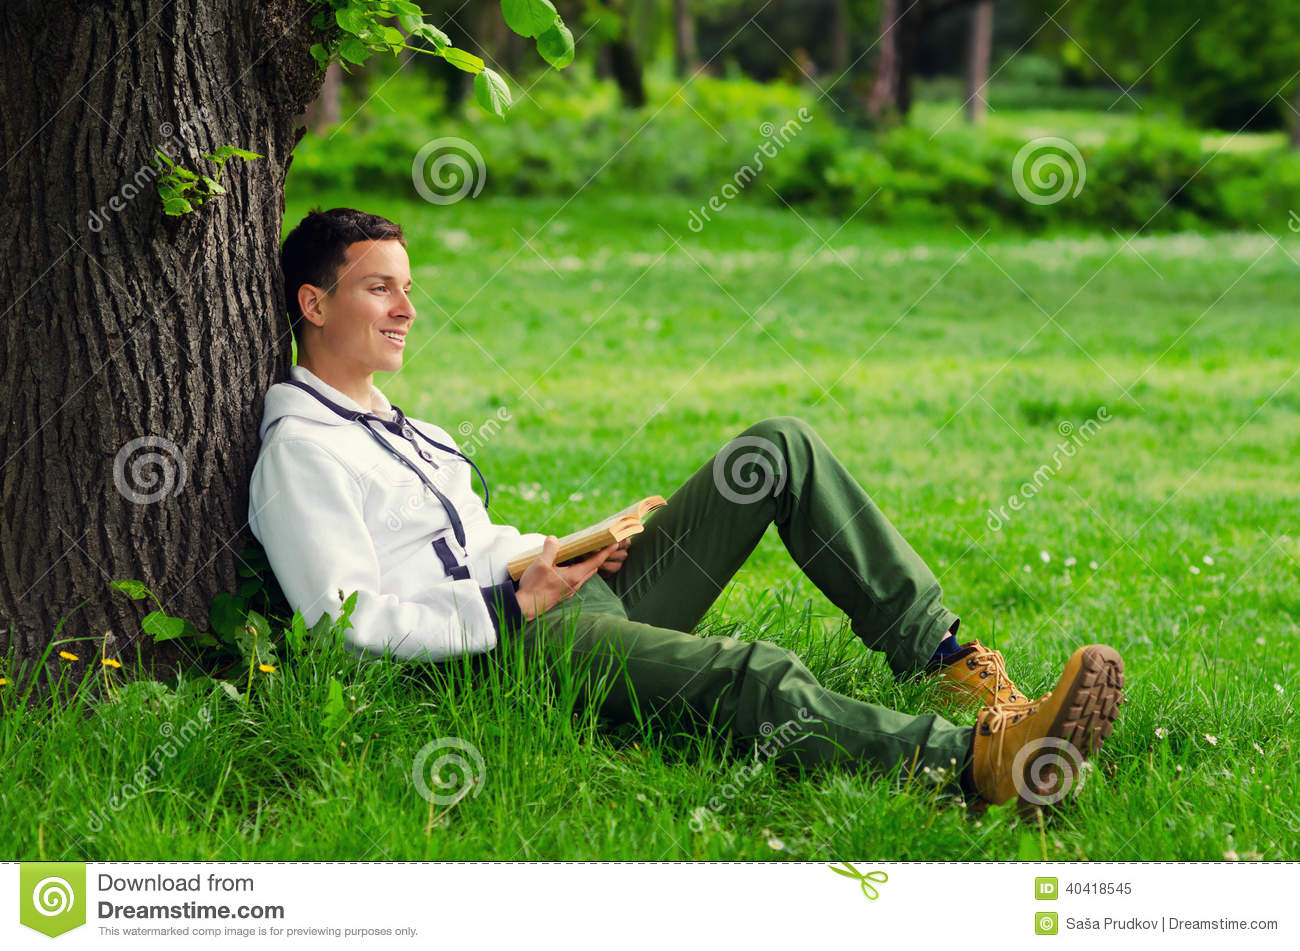 young-happy-man-reading-book-nature-beau